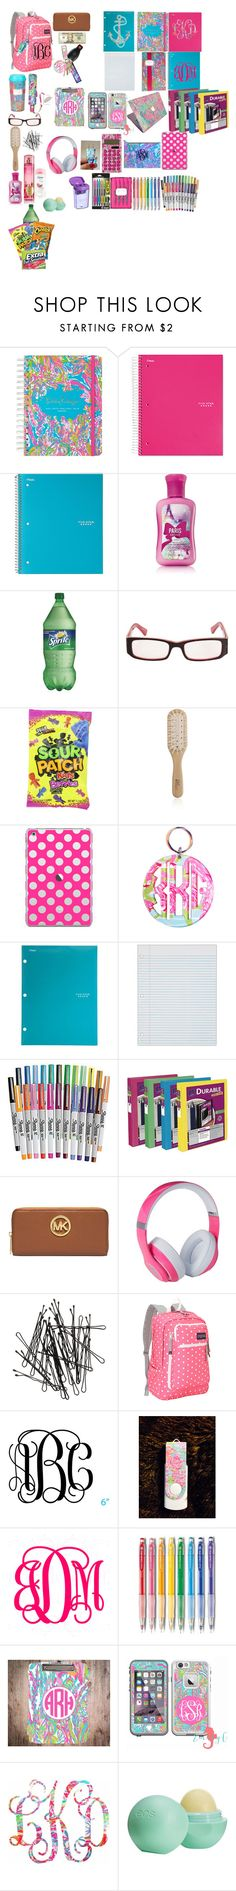 """back to school preppy school supplies for teens"" by turnerjazmyne on Polyvore featuring Lilly Pulitzer, Philip Kingsley, Casetify, OPTIONS, Sharpie, Avery, Michael Kors, Beats by Dr. Dre, H&M and JanSport"